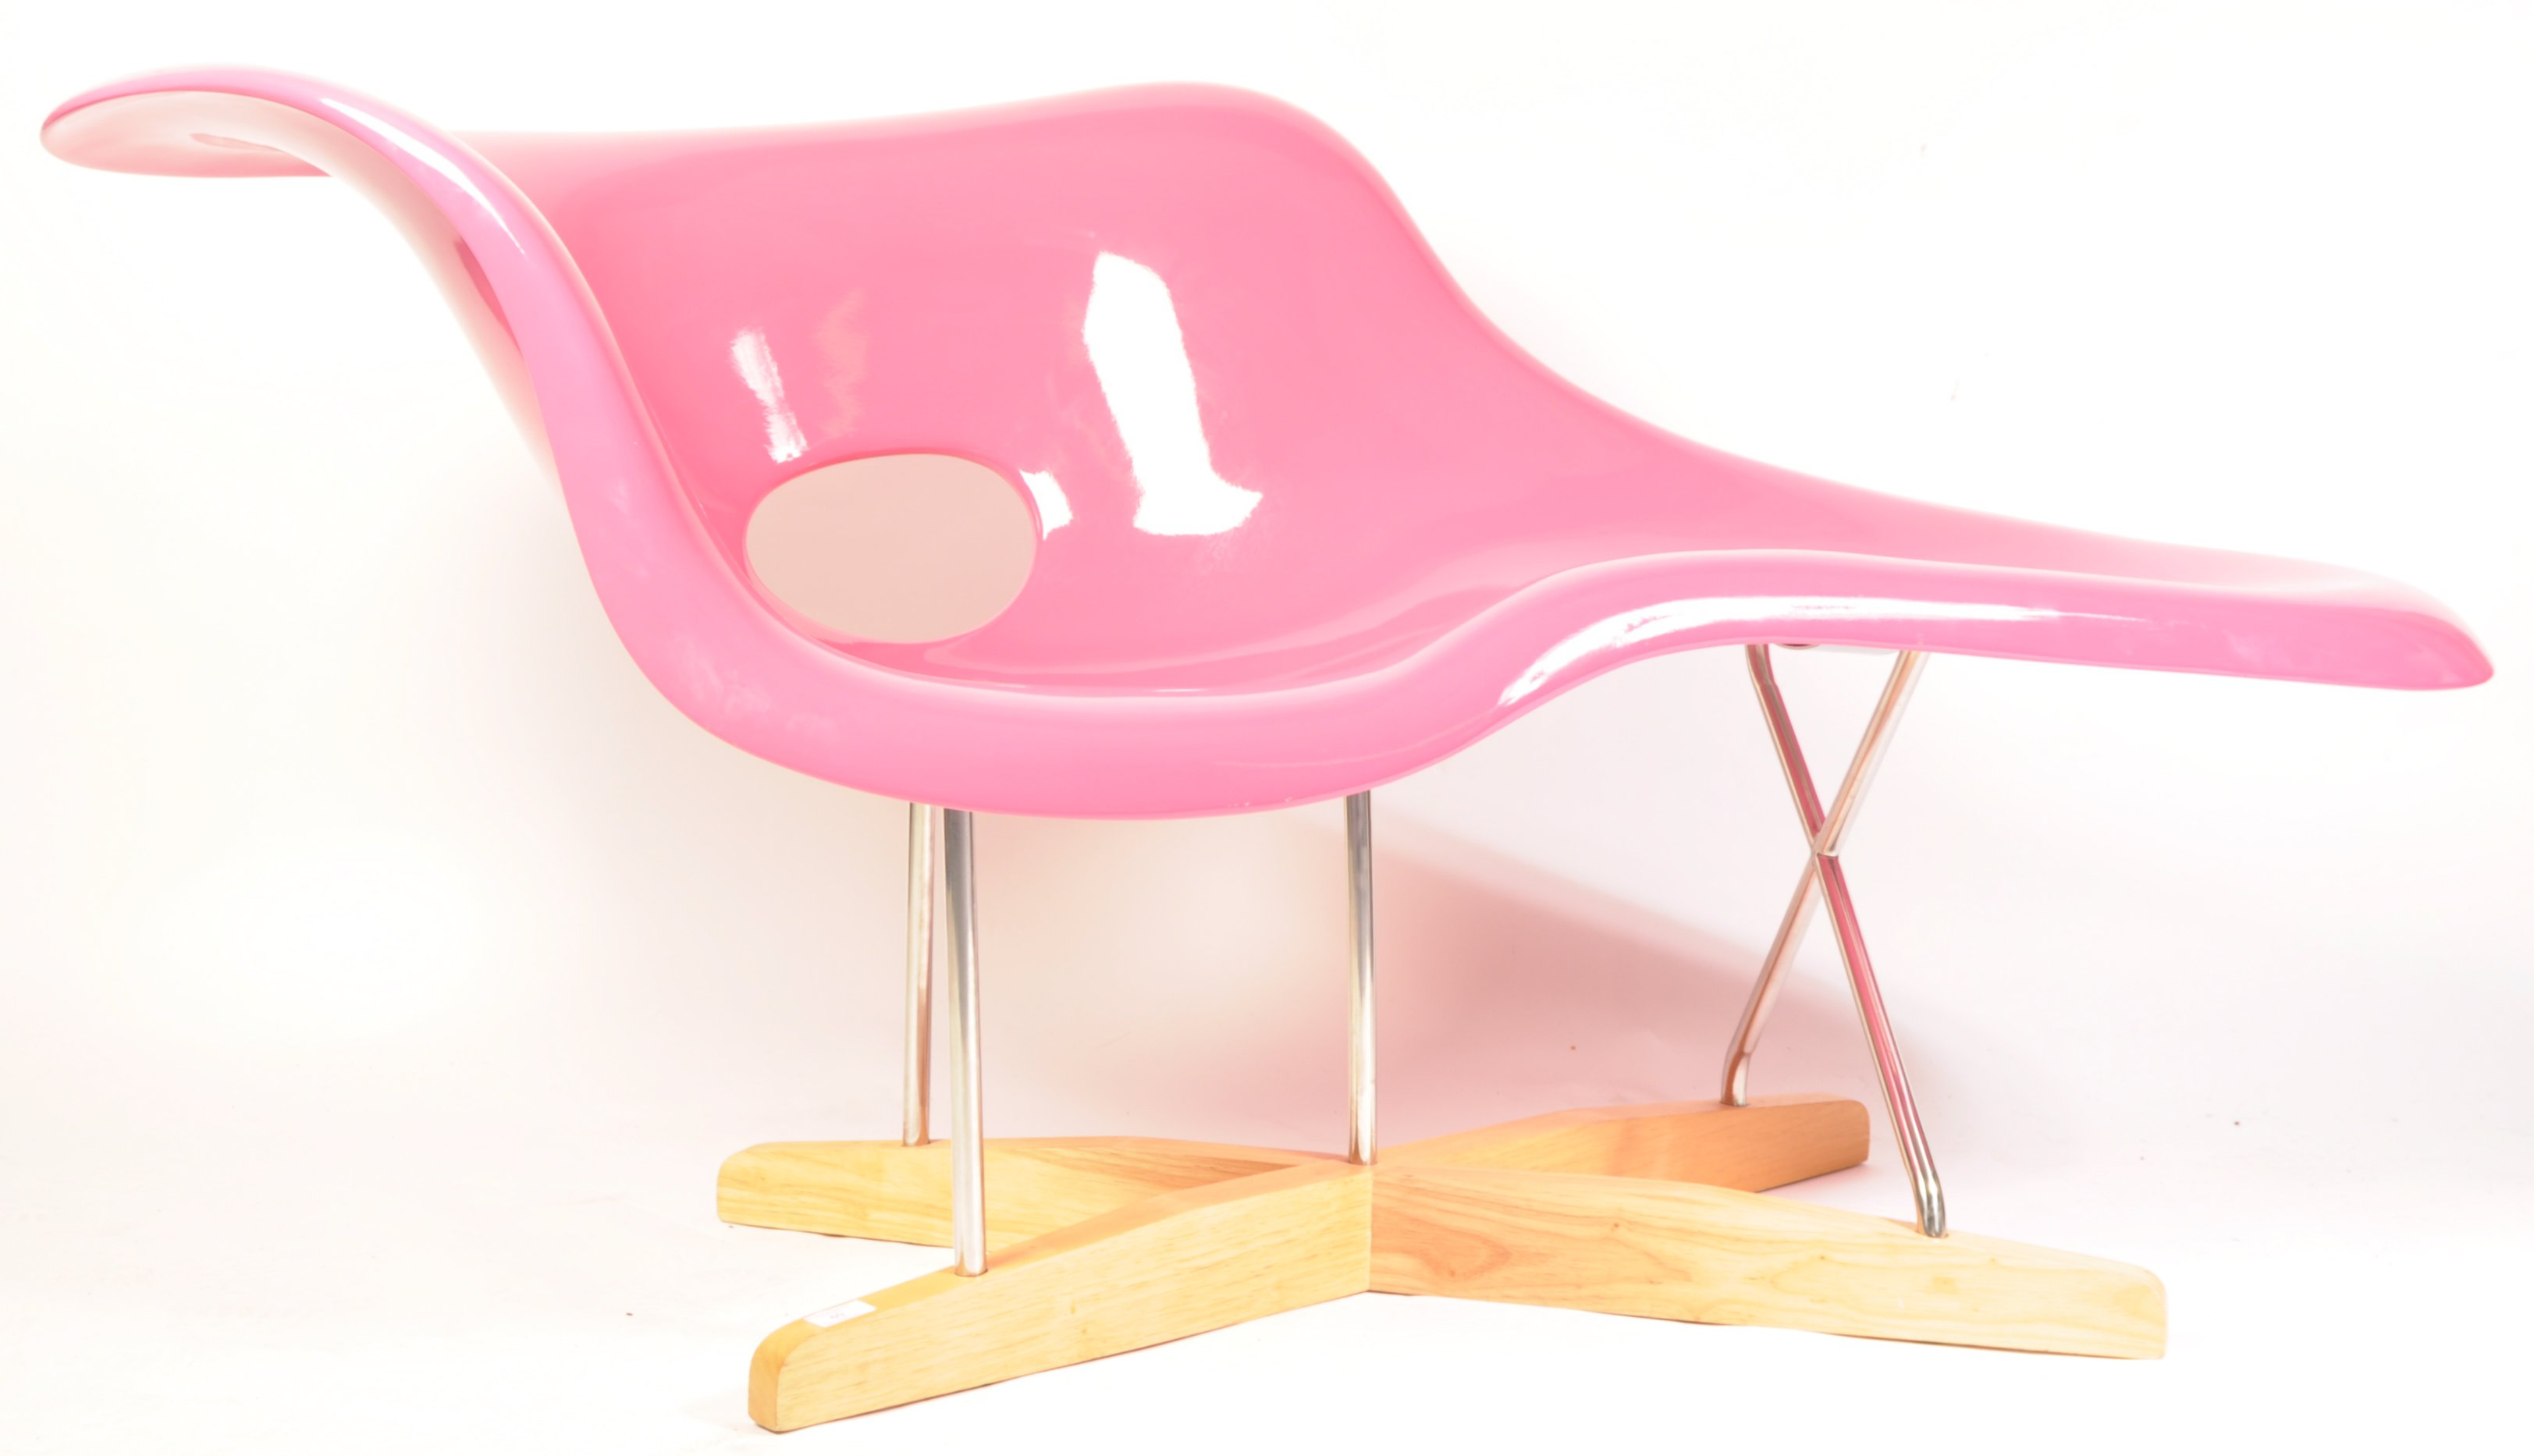 Lot 60 - AFTER CHARLES AND RAY EAMES CONTEMPORARY LA CHAISE LOUNGE CHAIR